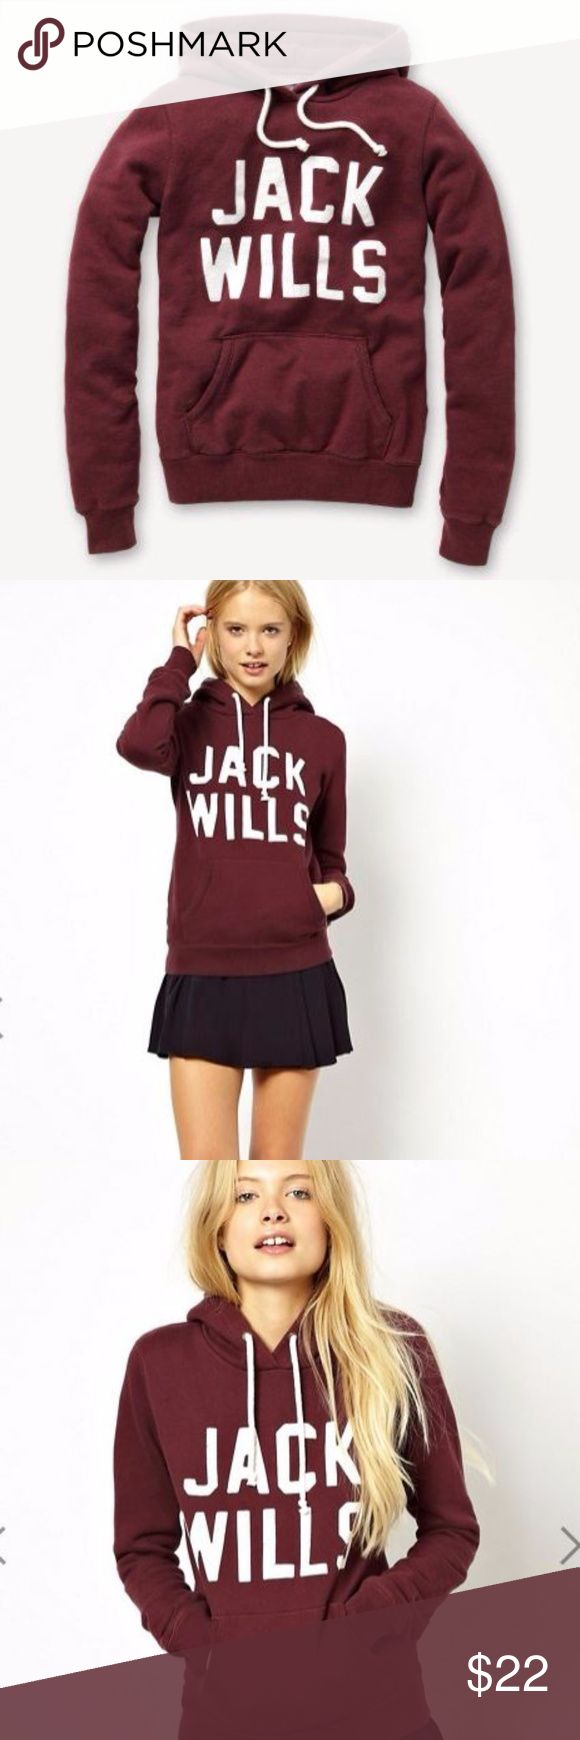 Jack Wills Hoodie Has signs of wear (natural fading from washing) but still has tons of life in it. Navy. Fleece inside. It's thick. Size 4US. Price as listed 🎈 It will keep you warm. Purchased in ASOS Jack Wills Tops Sweatshirts & Hoodies